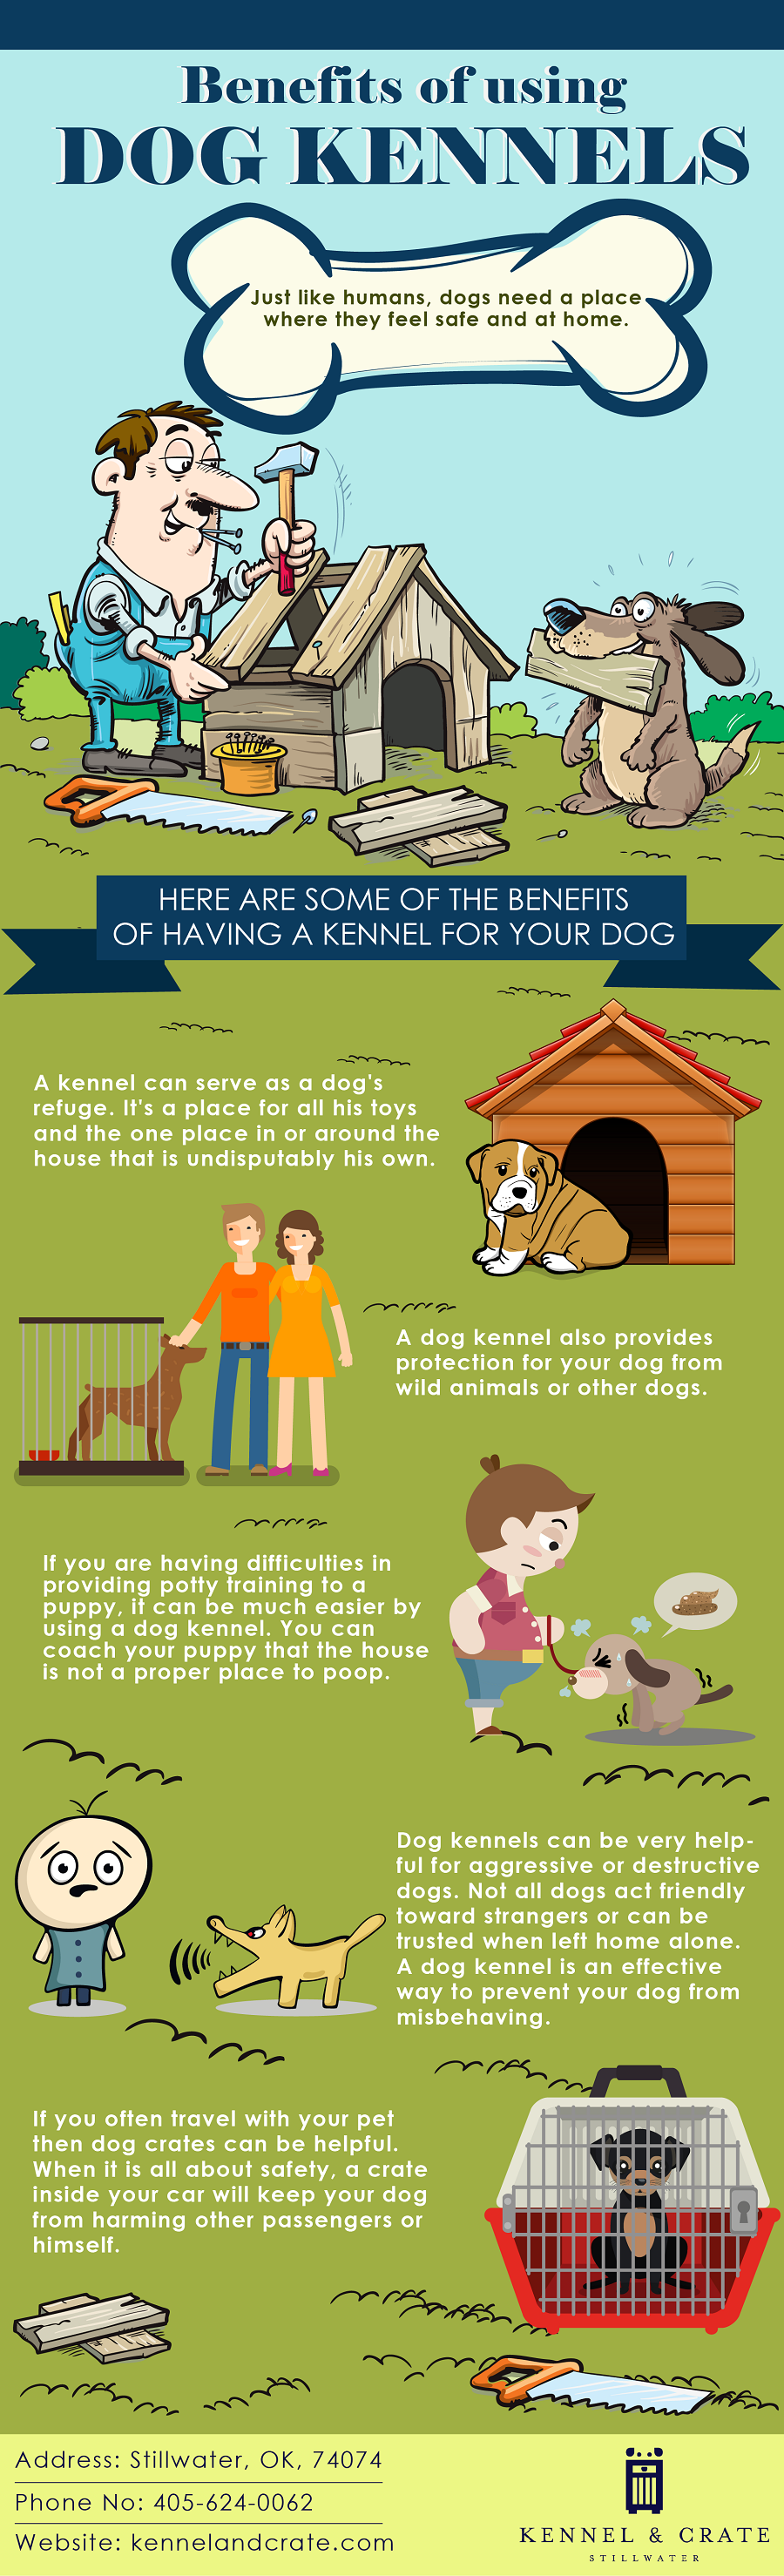 Benefits Of Using A Dog Kennel.png